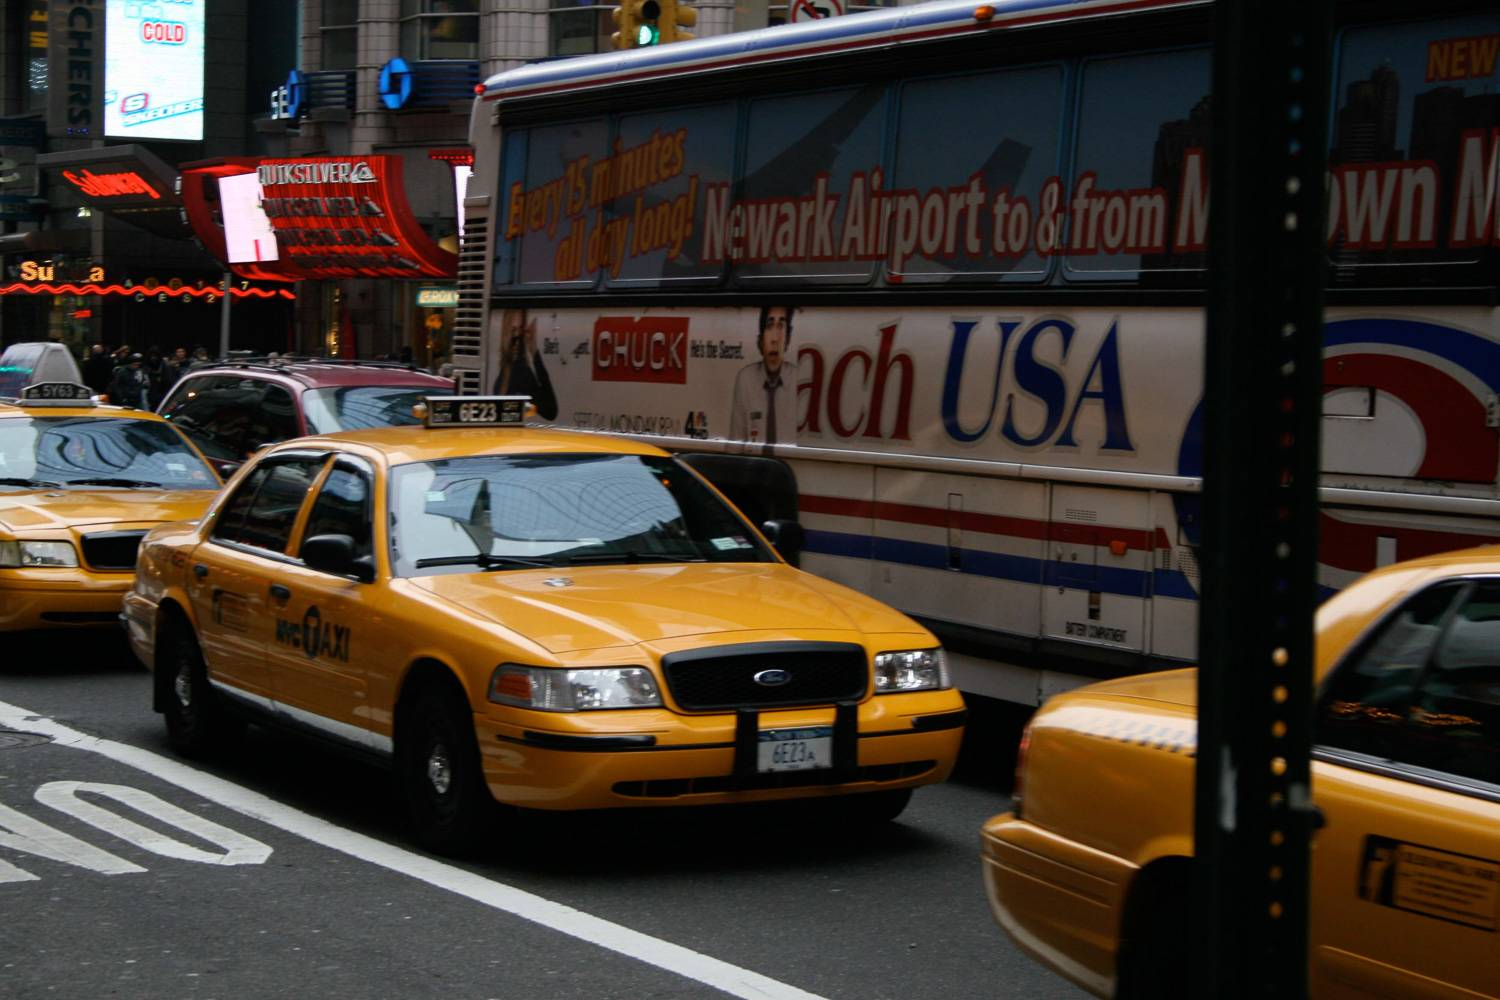 Image of yellow NYC taxi in front of Newark Airport Express Coach shuttle bus.